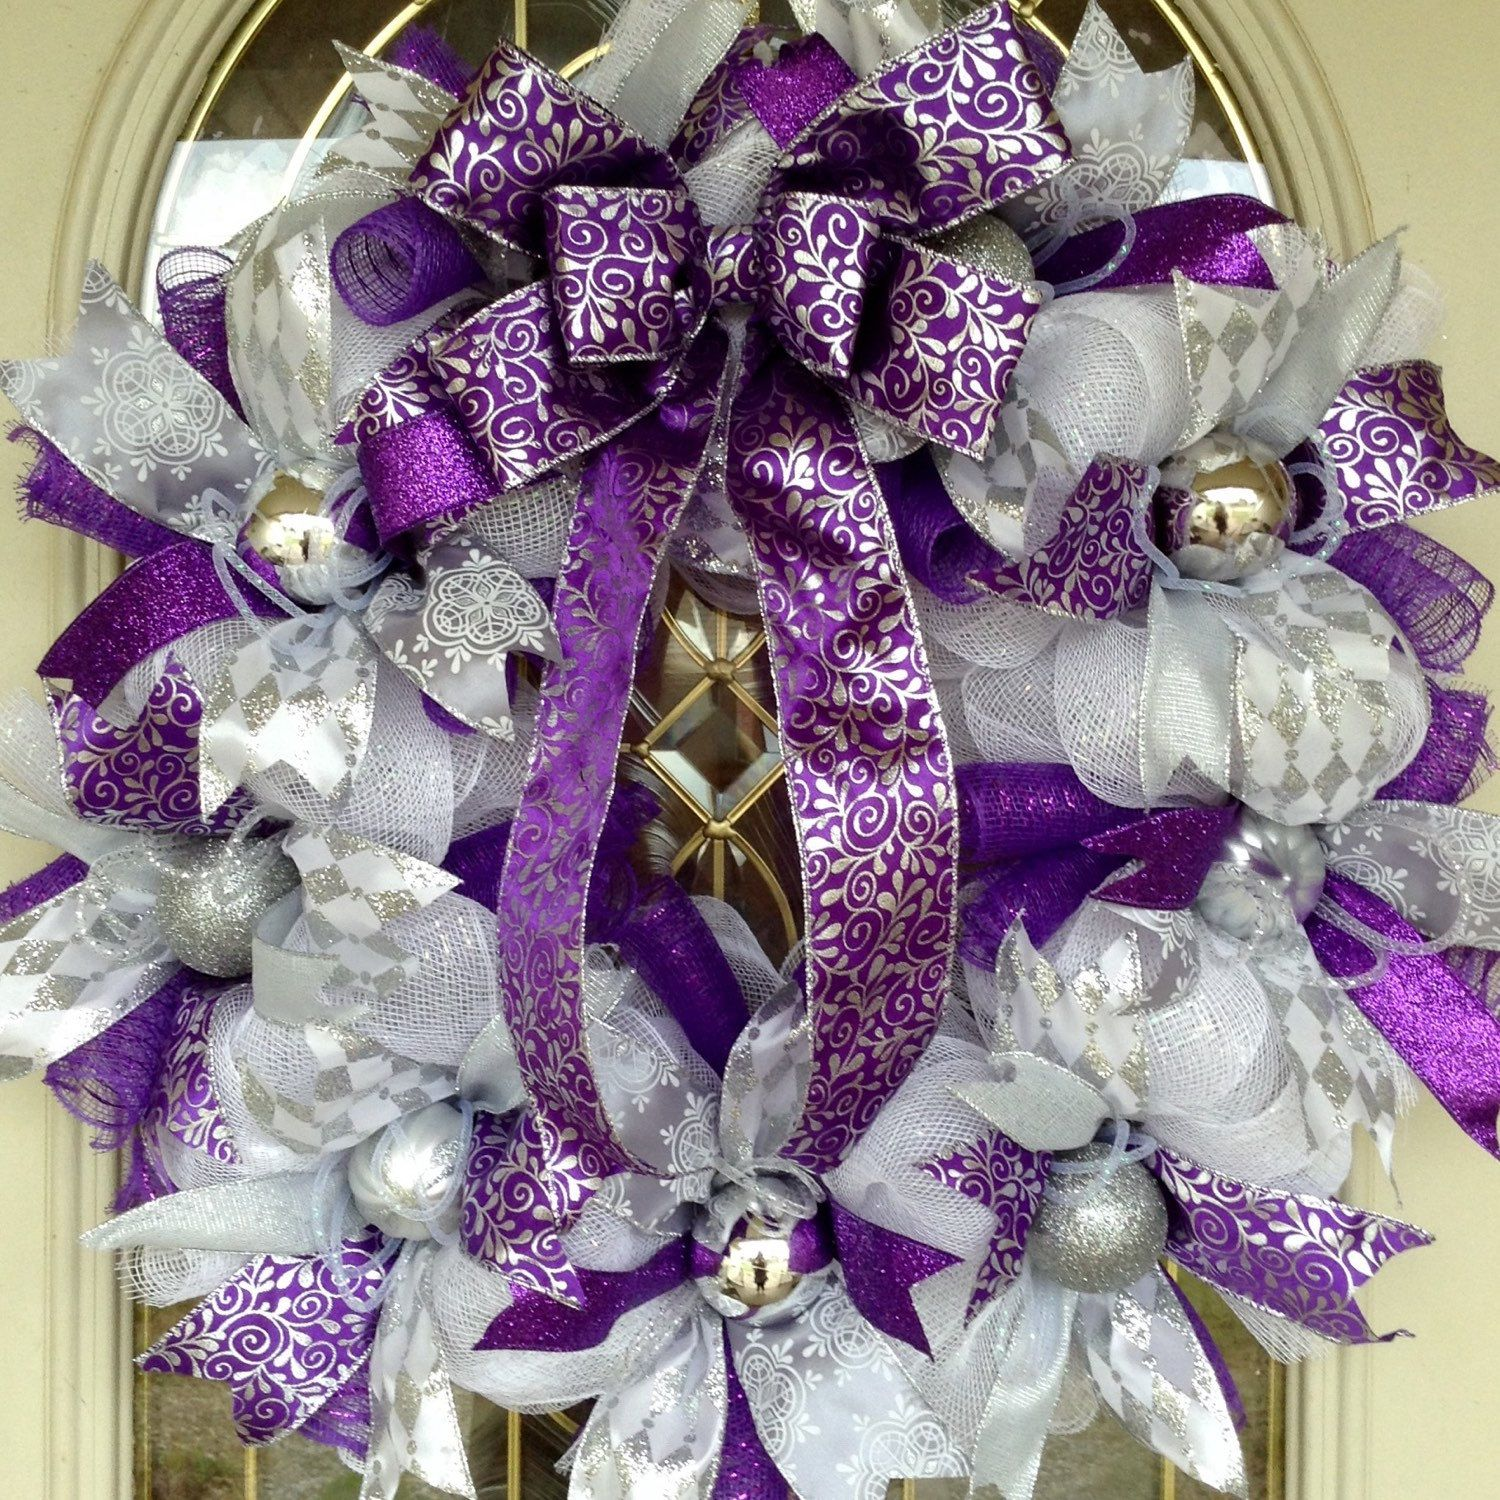 "Christmas Decorations In Purple: Large 24"" Round Christmas Purple, Silver And White Deco"